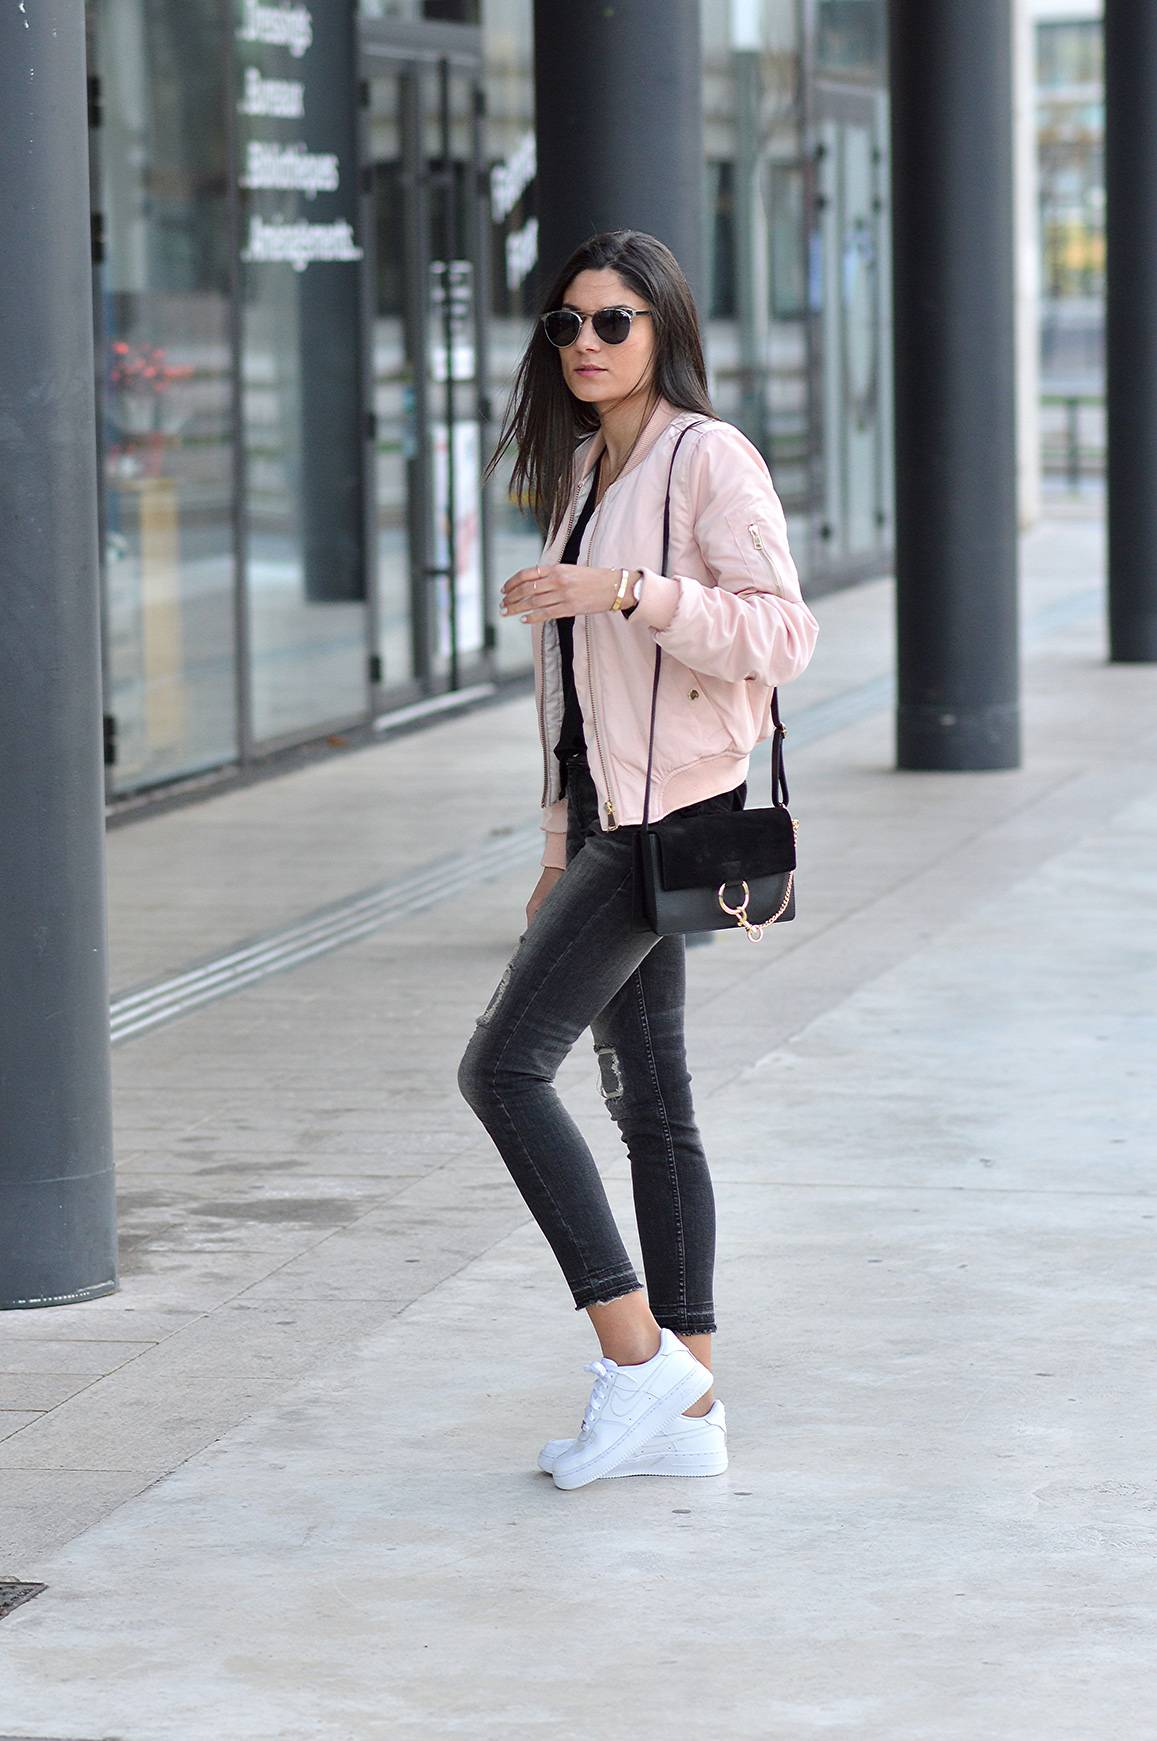 Style Tips On How To Wear A Bomber Jacket – Bomber Jacket Outfits01